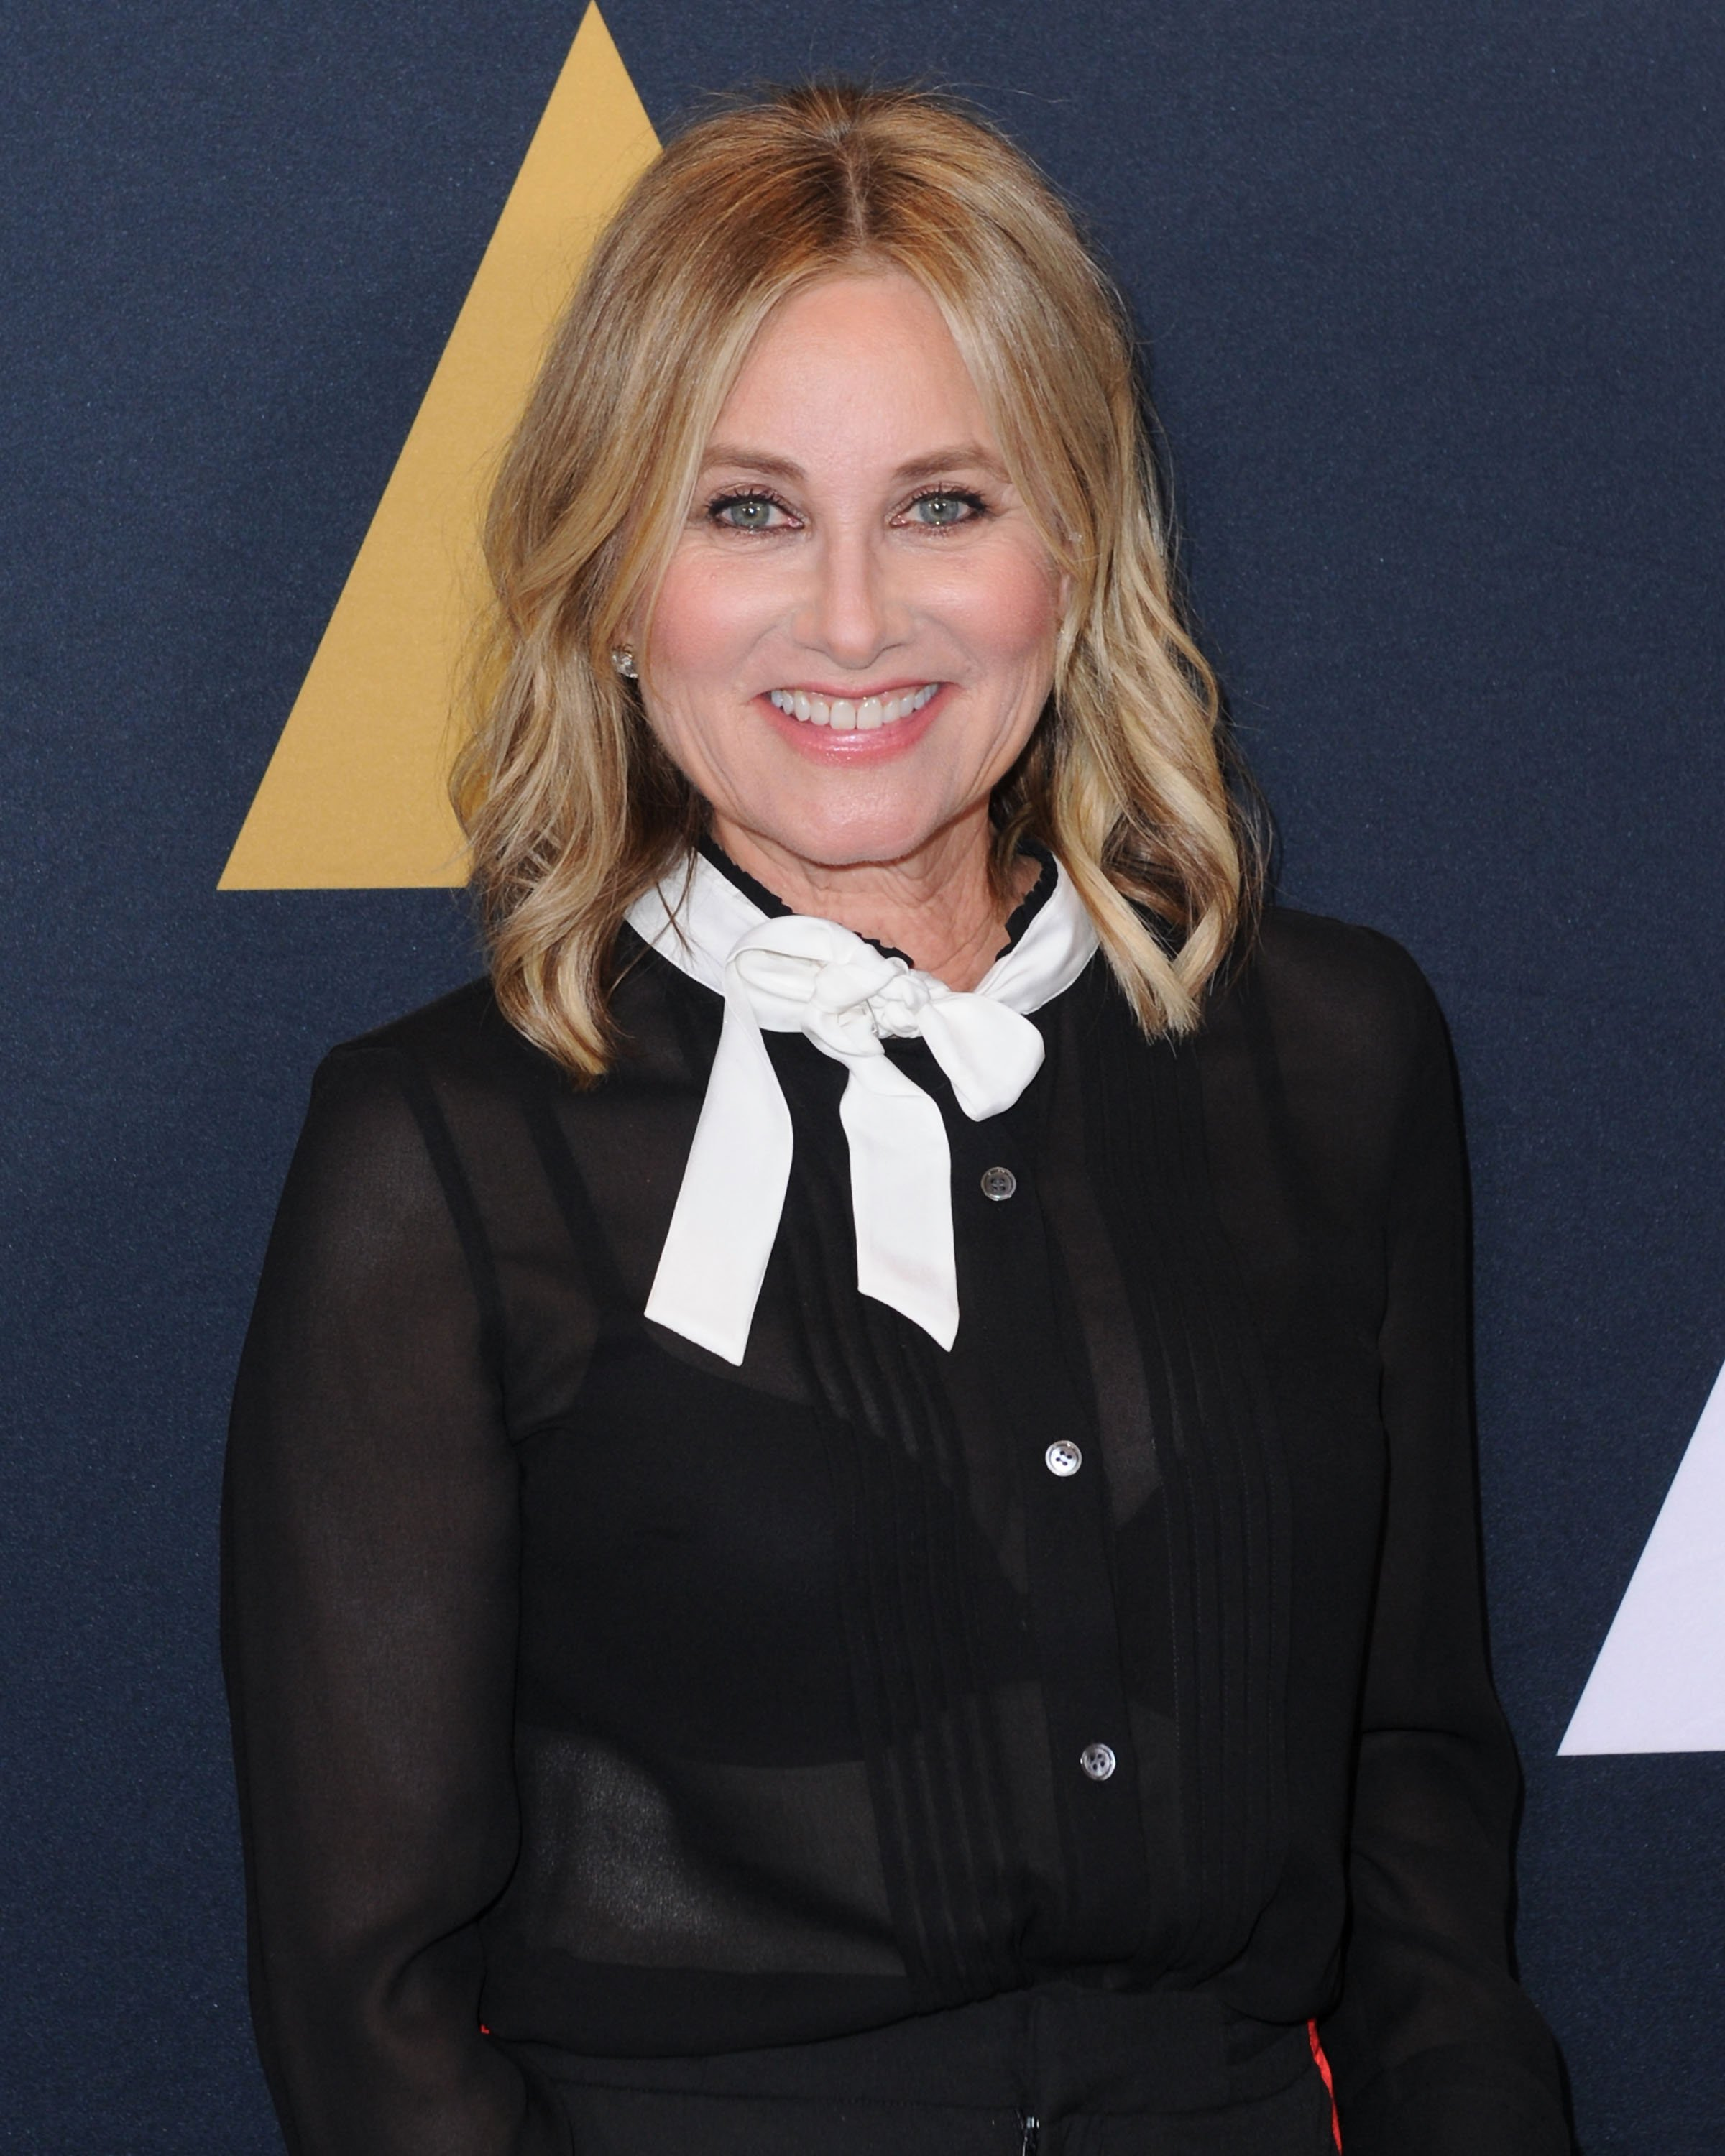 Maureen McCormick attends the Academy Celebrates Filmmaker Richard Donner in Beverly Hills on June 7, 2017 | Photo: Getty Images